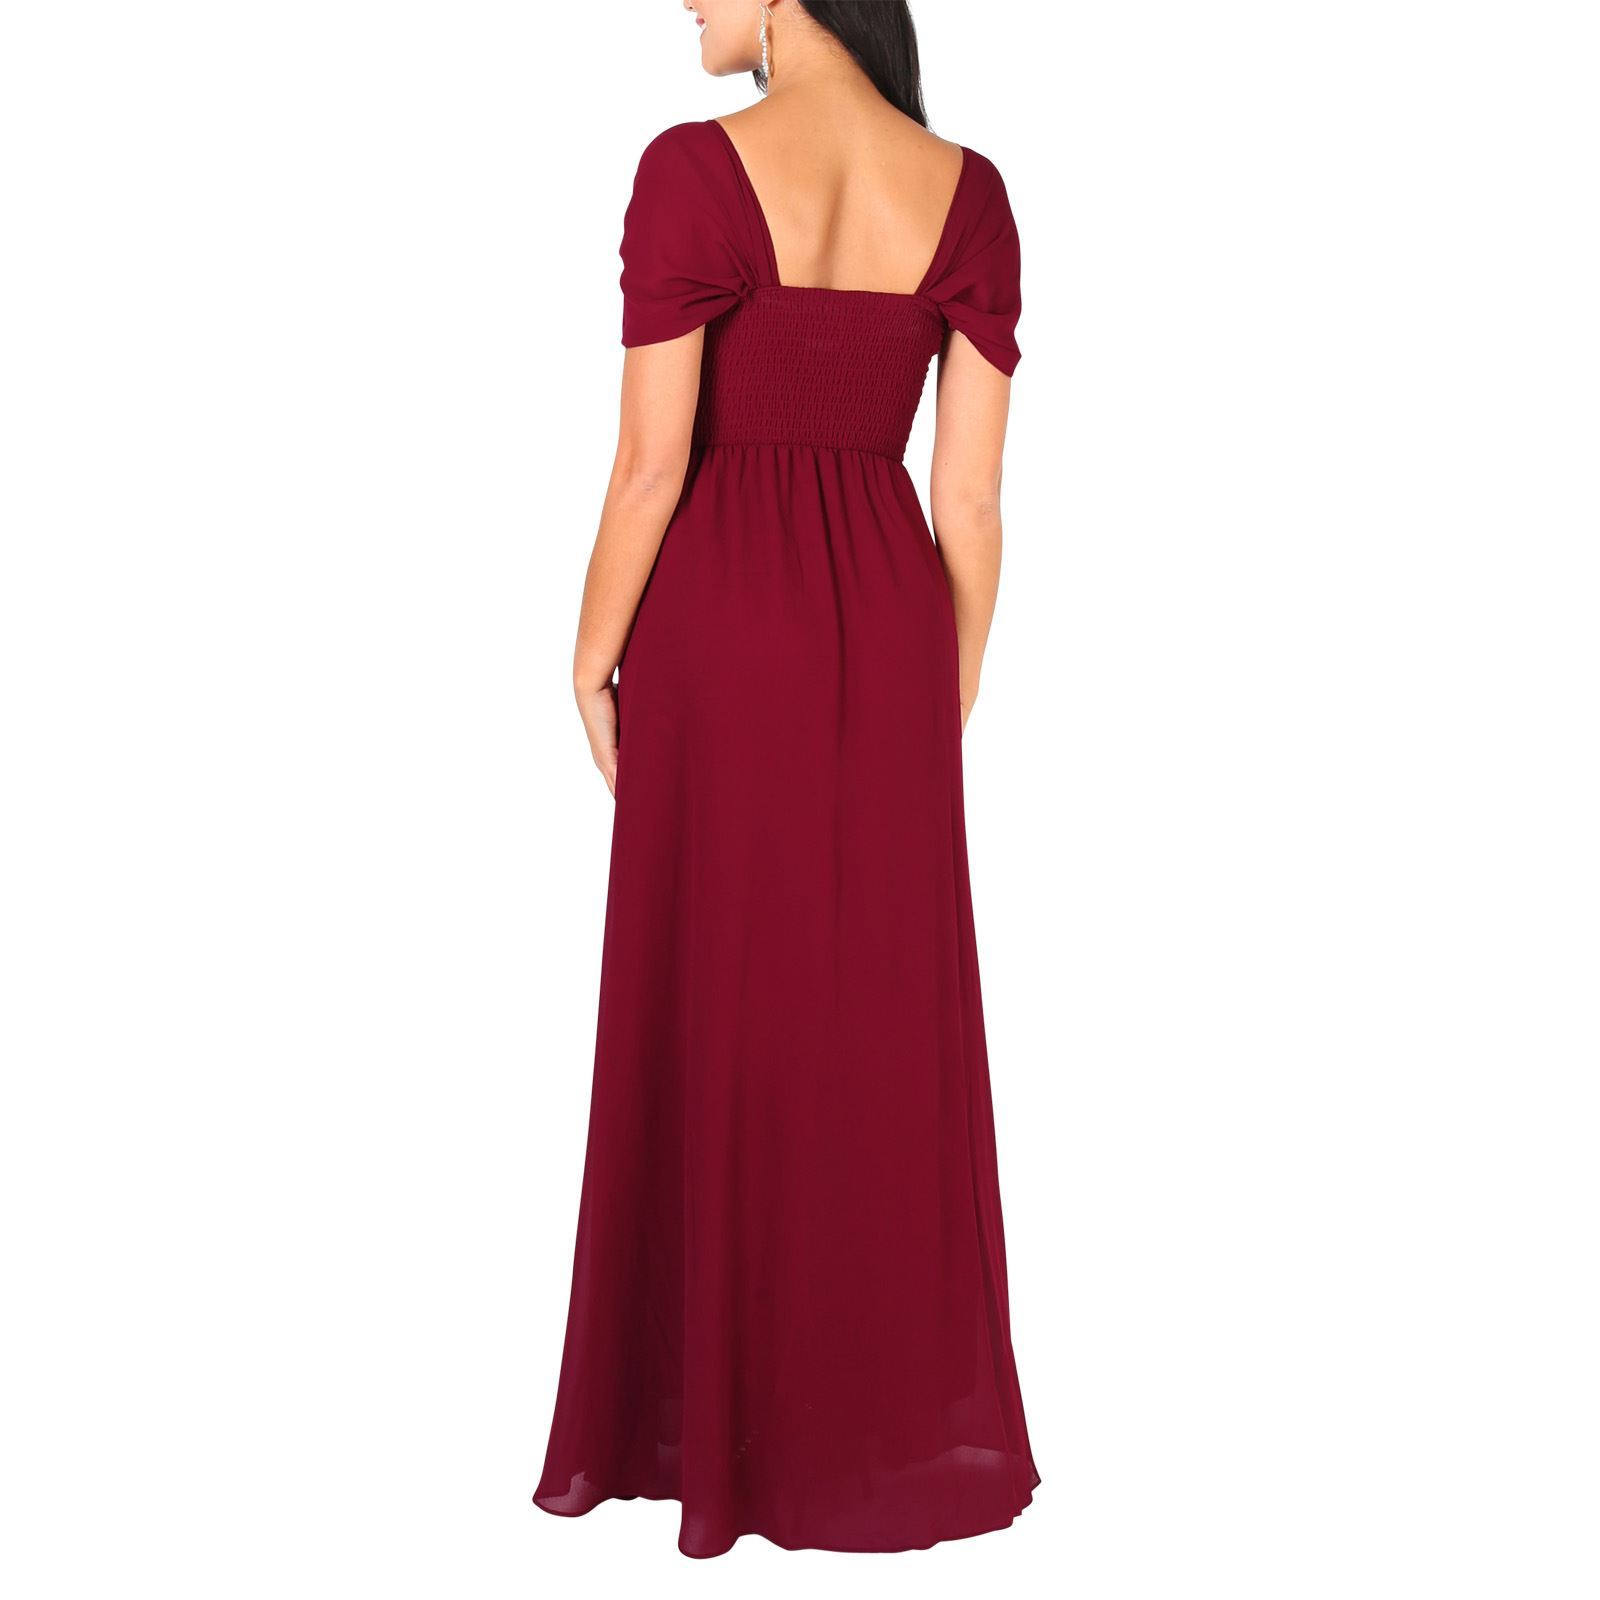 Womens-Formal-Evening-Wedding-Maxi-Prom-Dress-Long-On-Off-Shoulder-Ball-Gown thumbnail 66